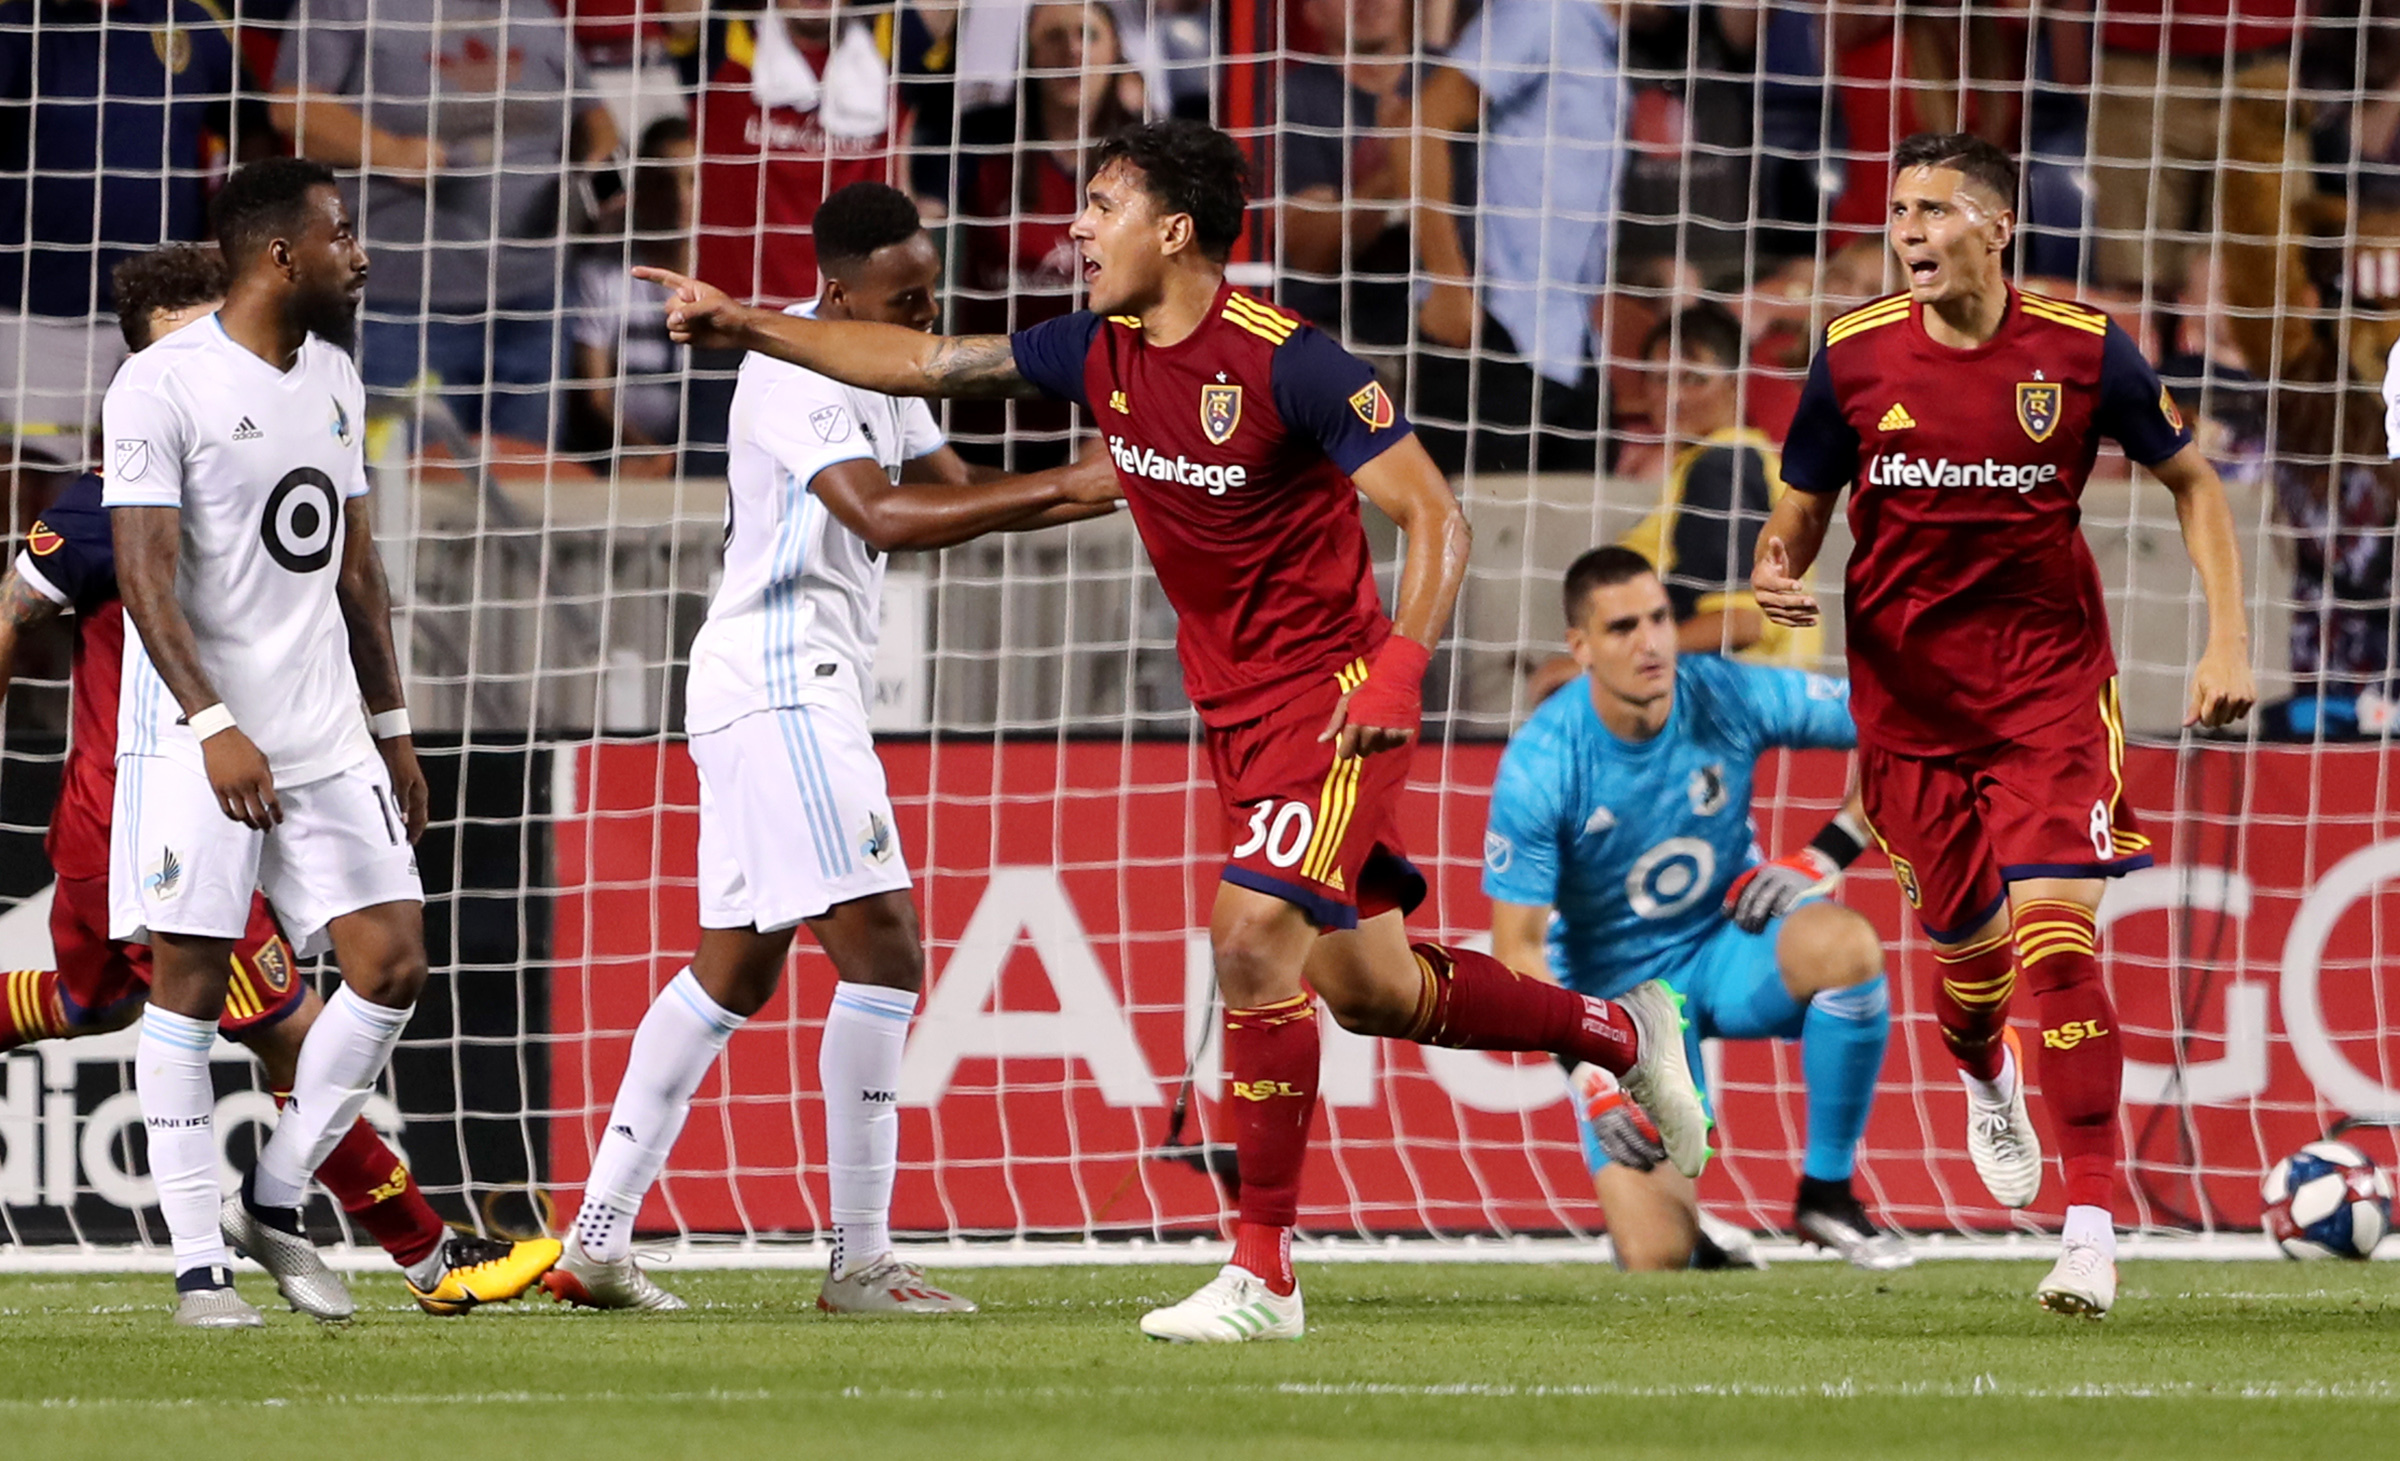 Real Salt Lake defender Marcelo Silva (30) celebrates after scoring the game-tying goal as Real Salt Lake and Minnesota play in an MLS soccer match at Rio Tinto Stadium in Sandy on Saturday, July 20, 2019. The two teams played to a 1-1 draw.